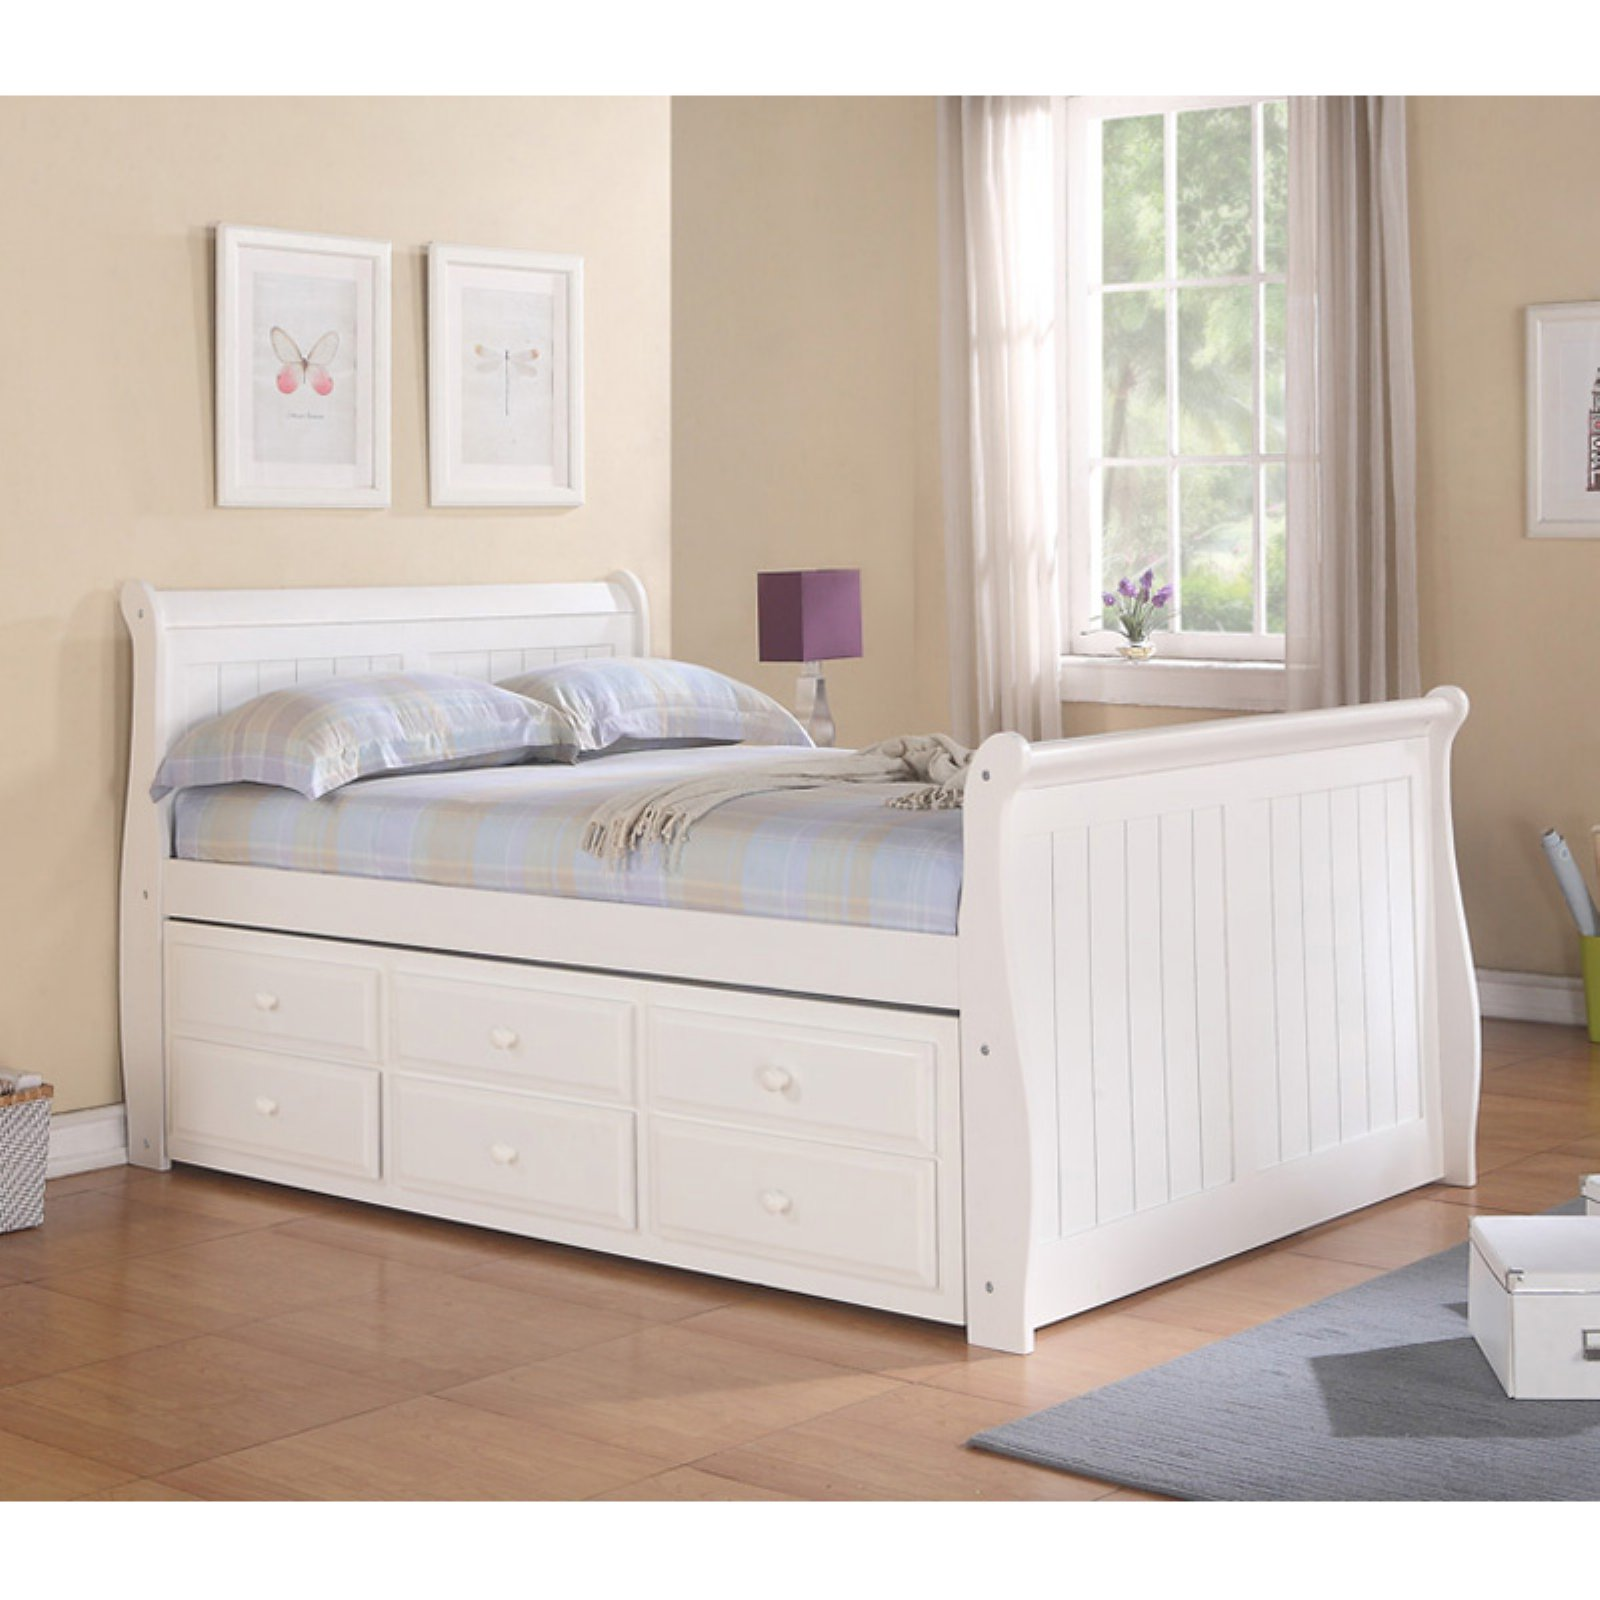 Donco Captains Sleigh Bed